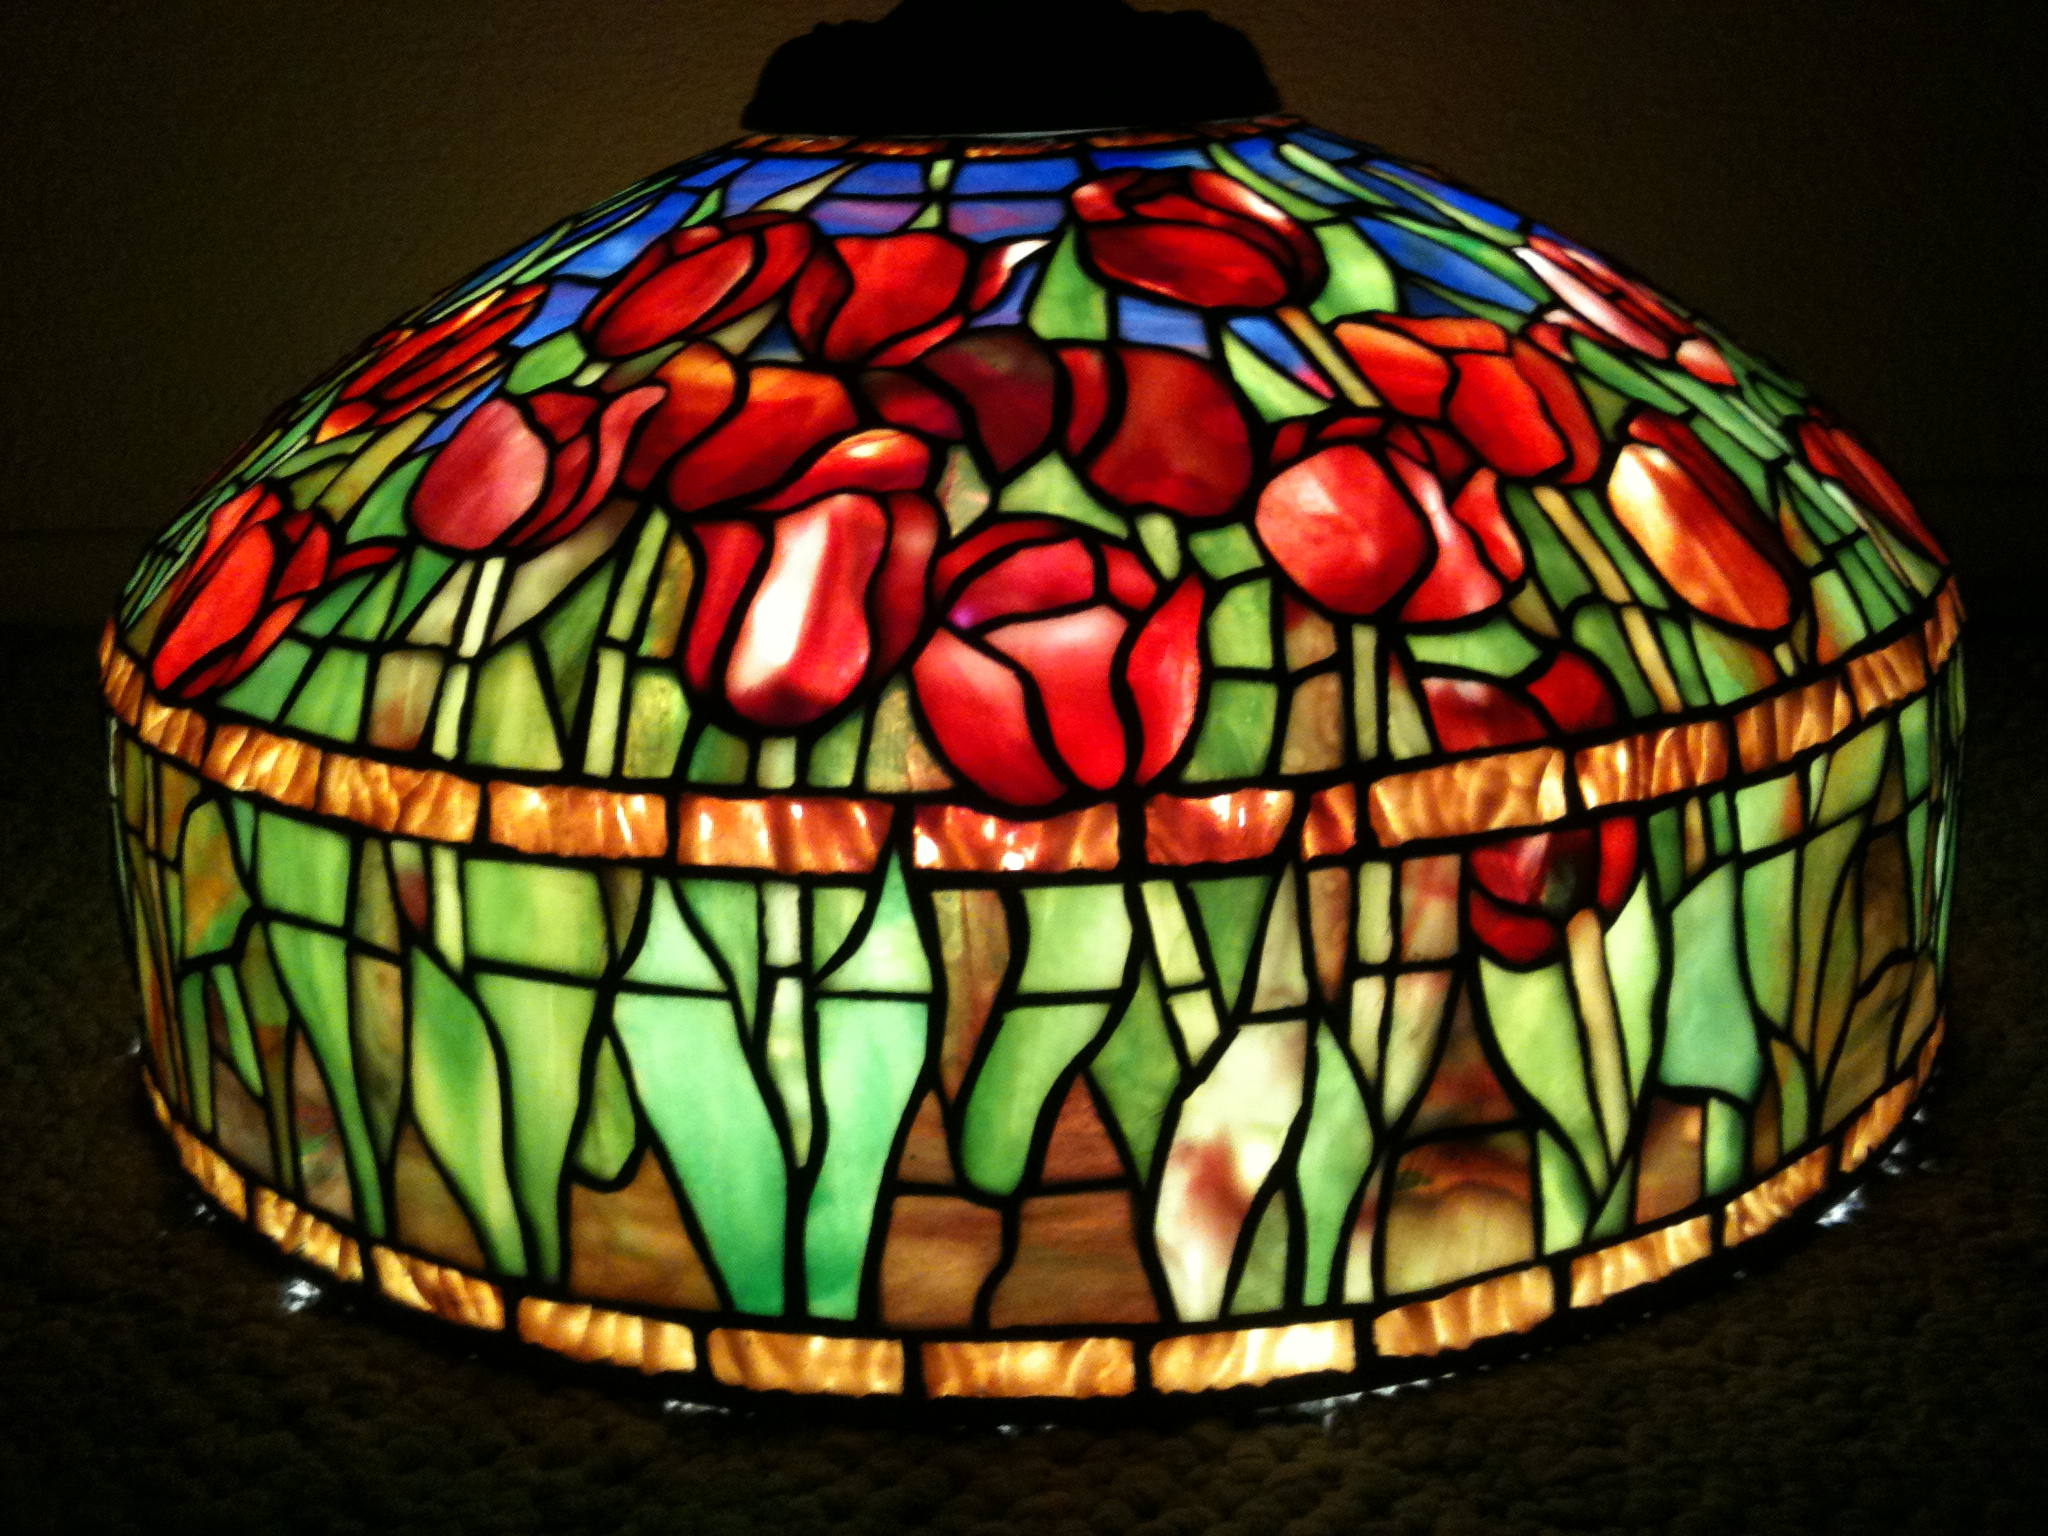 Tiffany stained glass lamps 10 reasons to